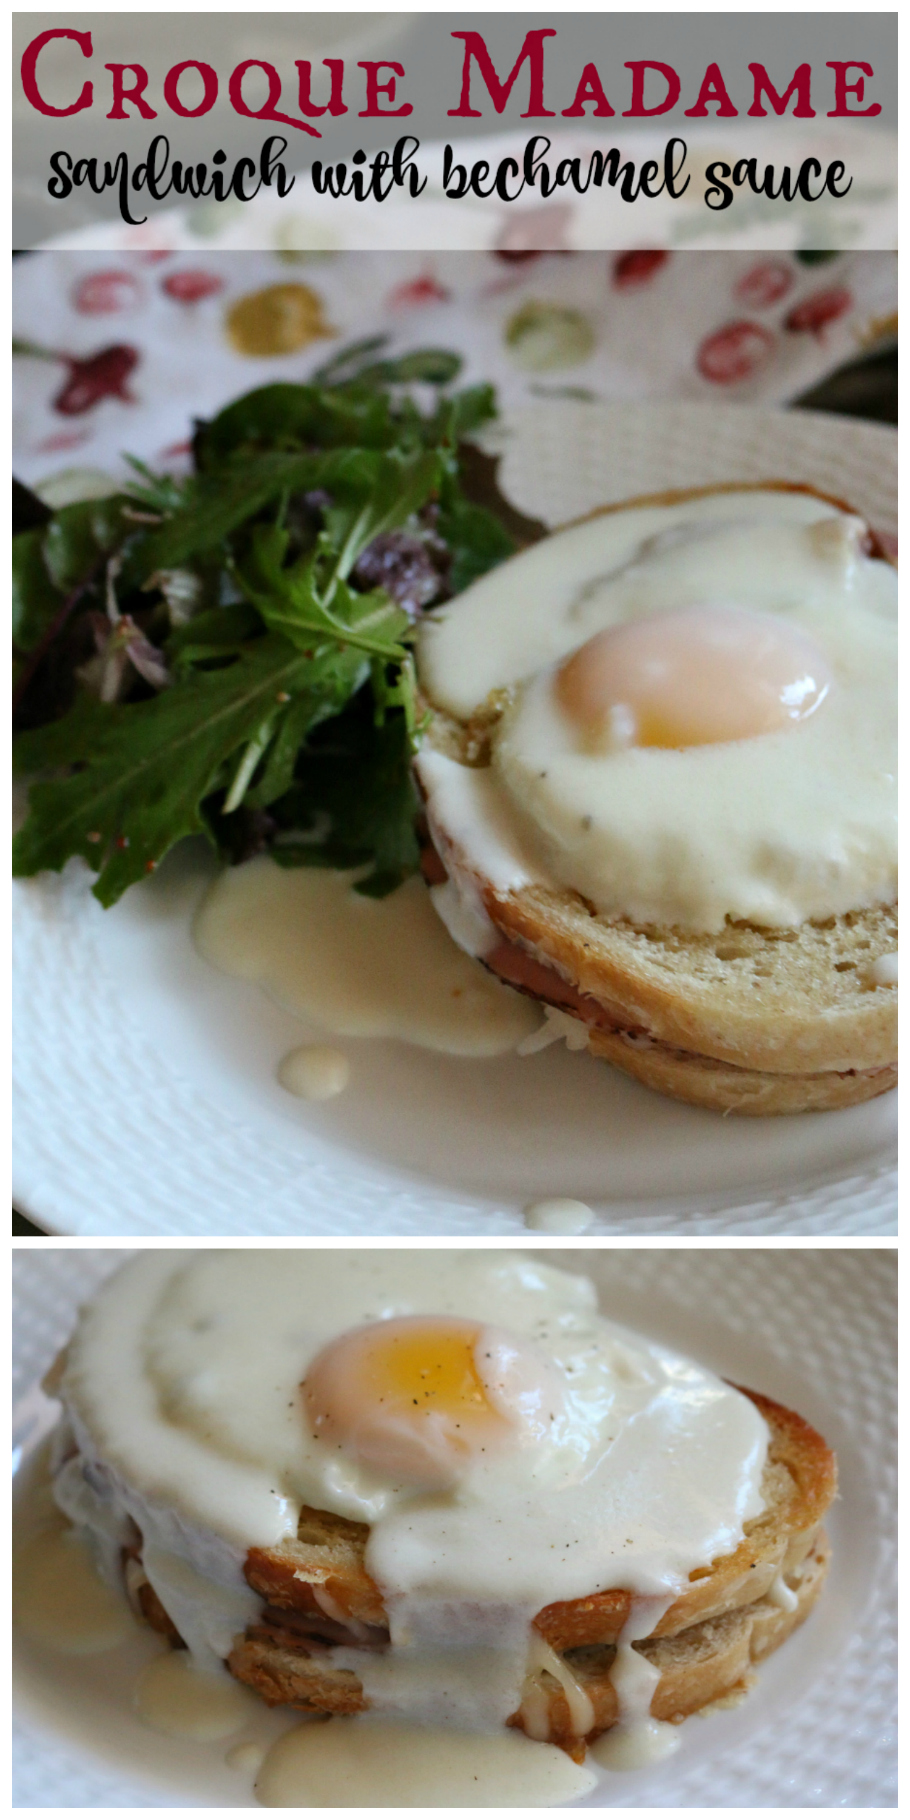 French Croque Madame Sandwich with Bechamel Sauce CeceliasGoodStuff.com Good Food for Good People